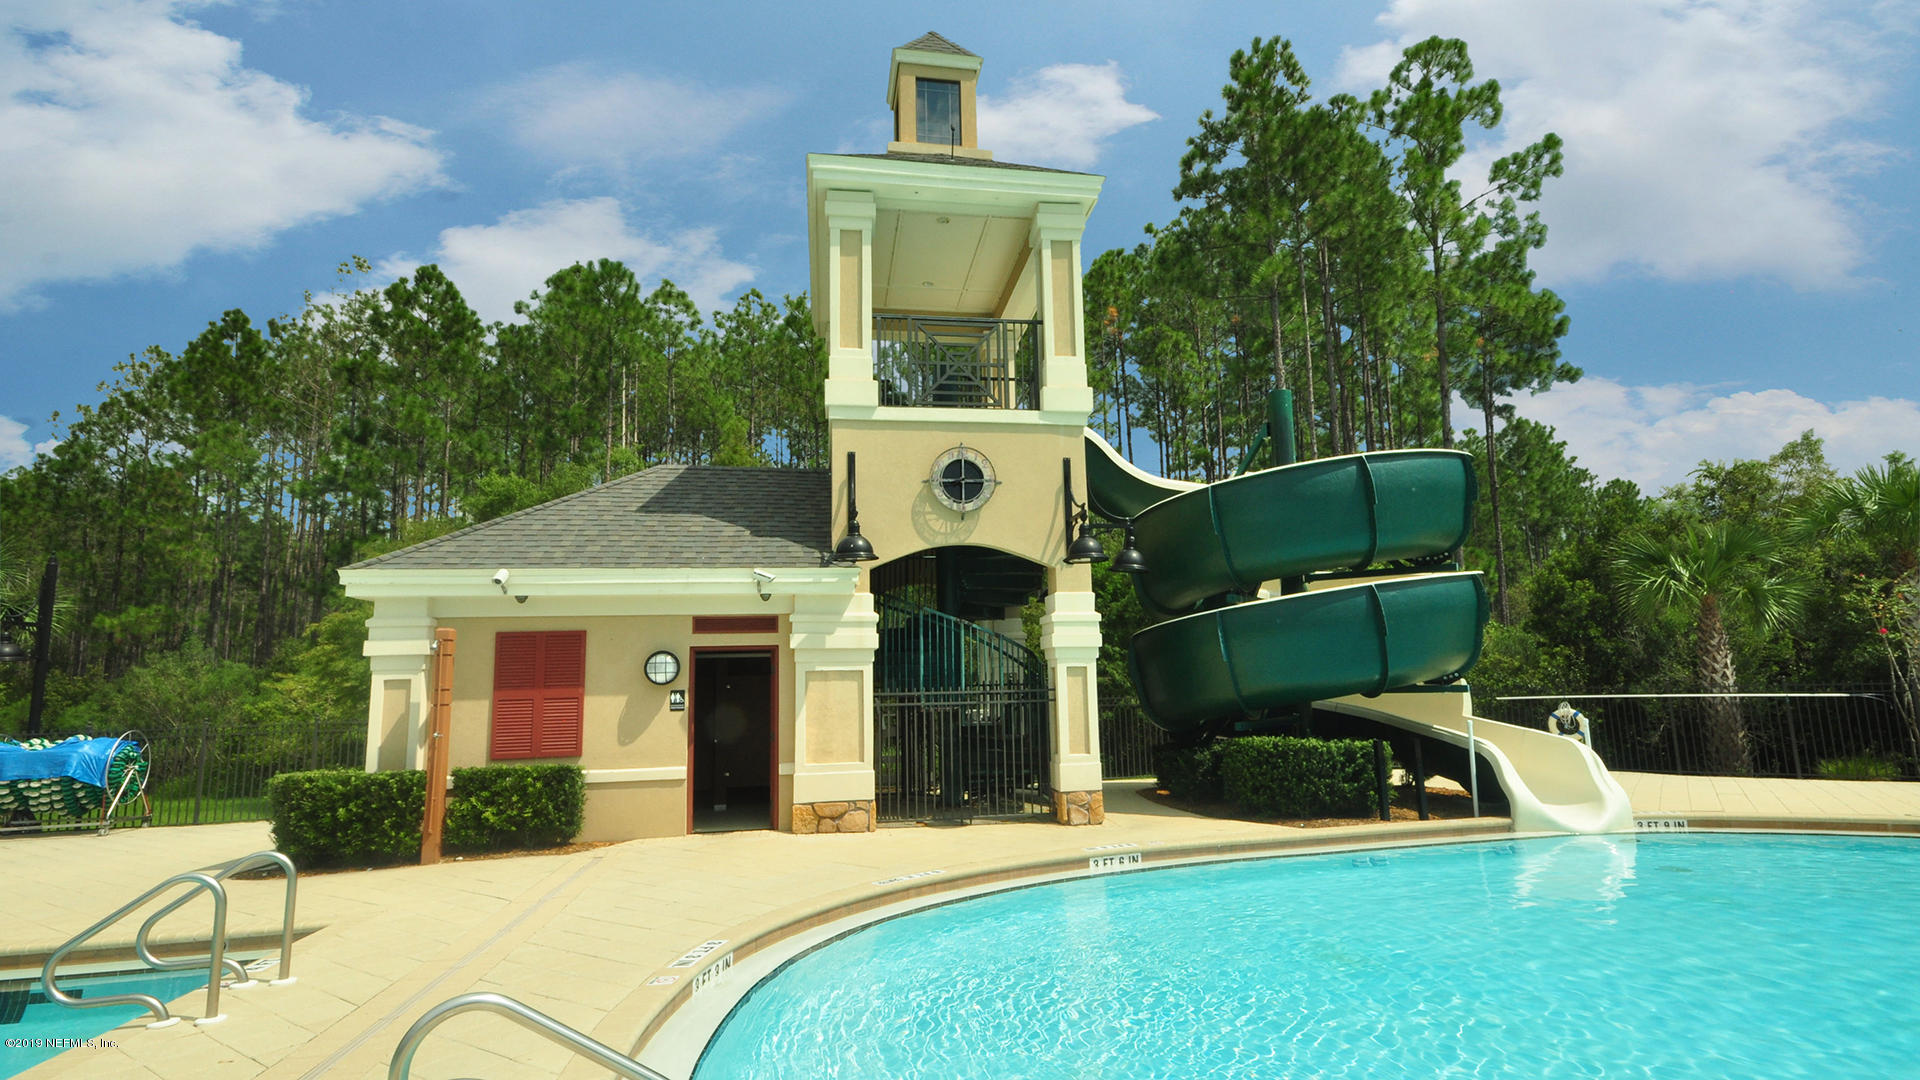 47 SCOTCH PEBBLE, ST JOHNS, FLORIDA 32259, 3 Bedrooms Bedrooms, ,2 BathroomsBathrooms,Residential,For sale,SCOTCH PEBBLE,1080989